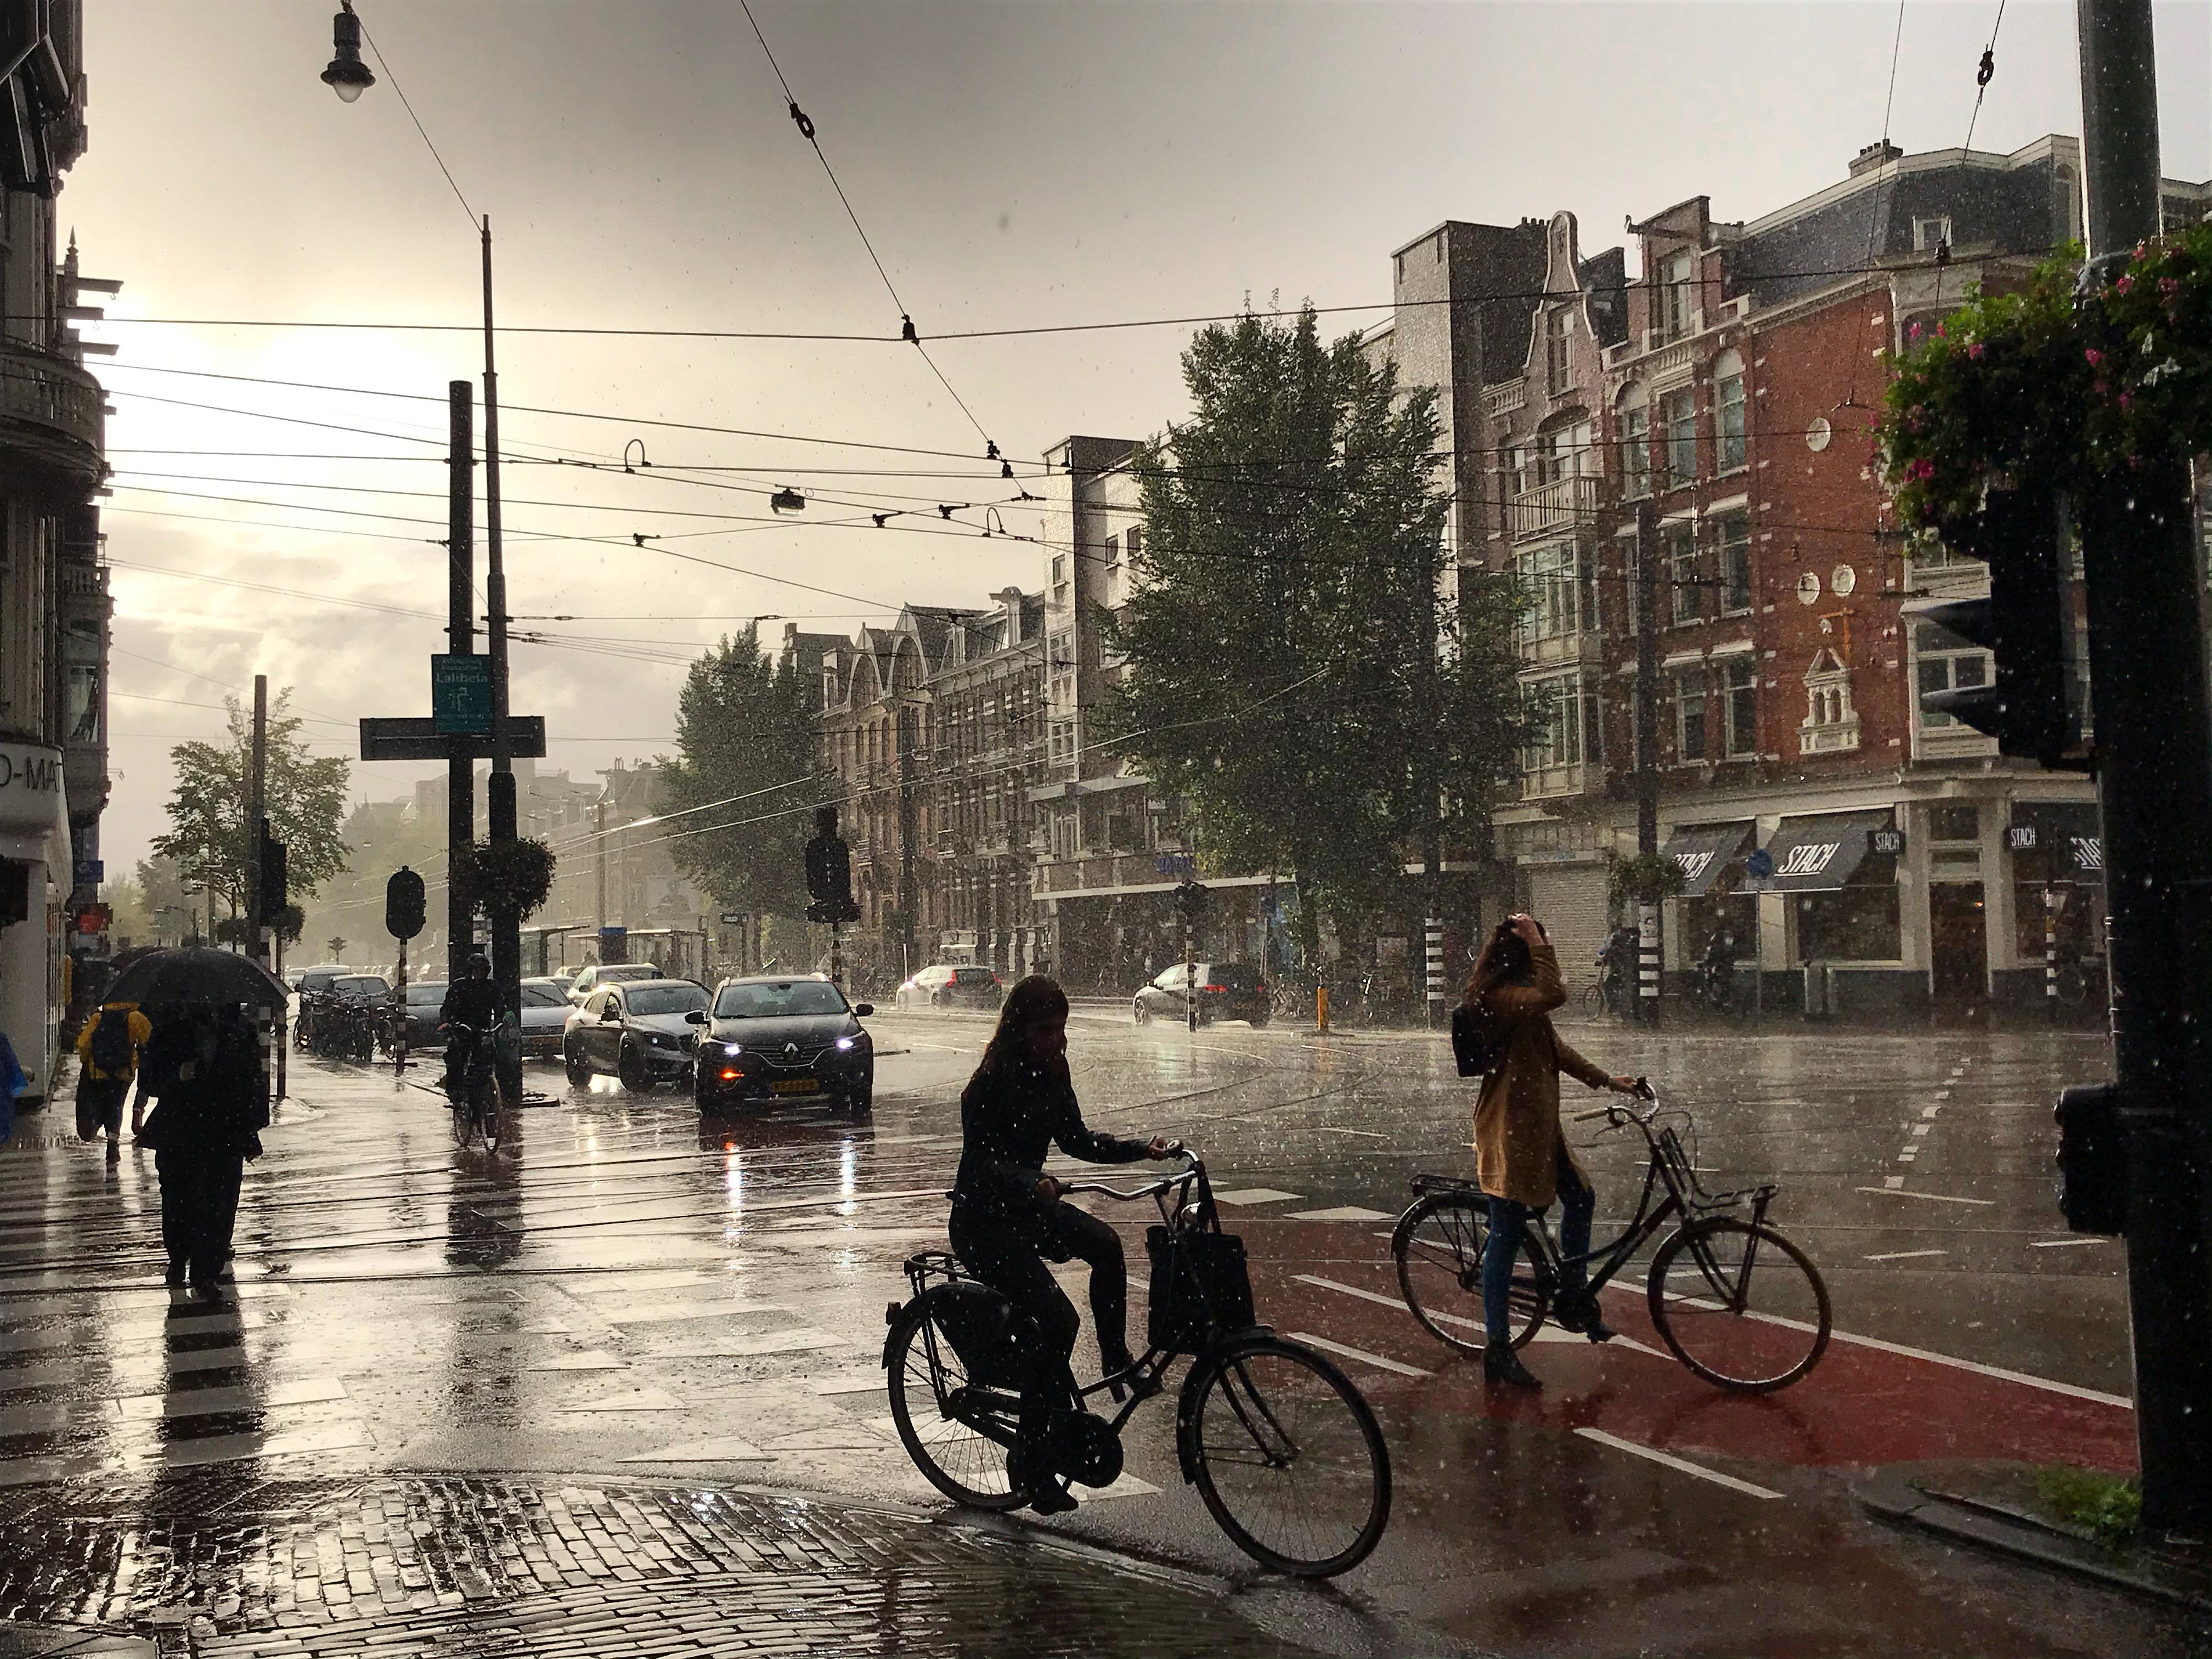 This pic I took of Amsterdam under the rain